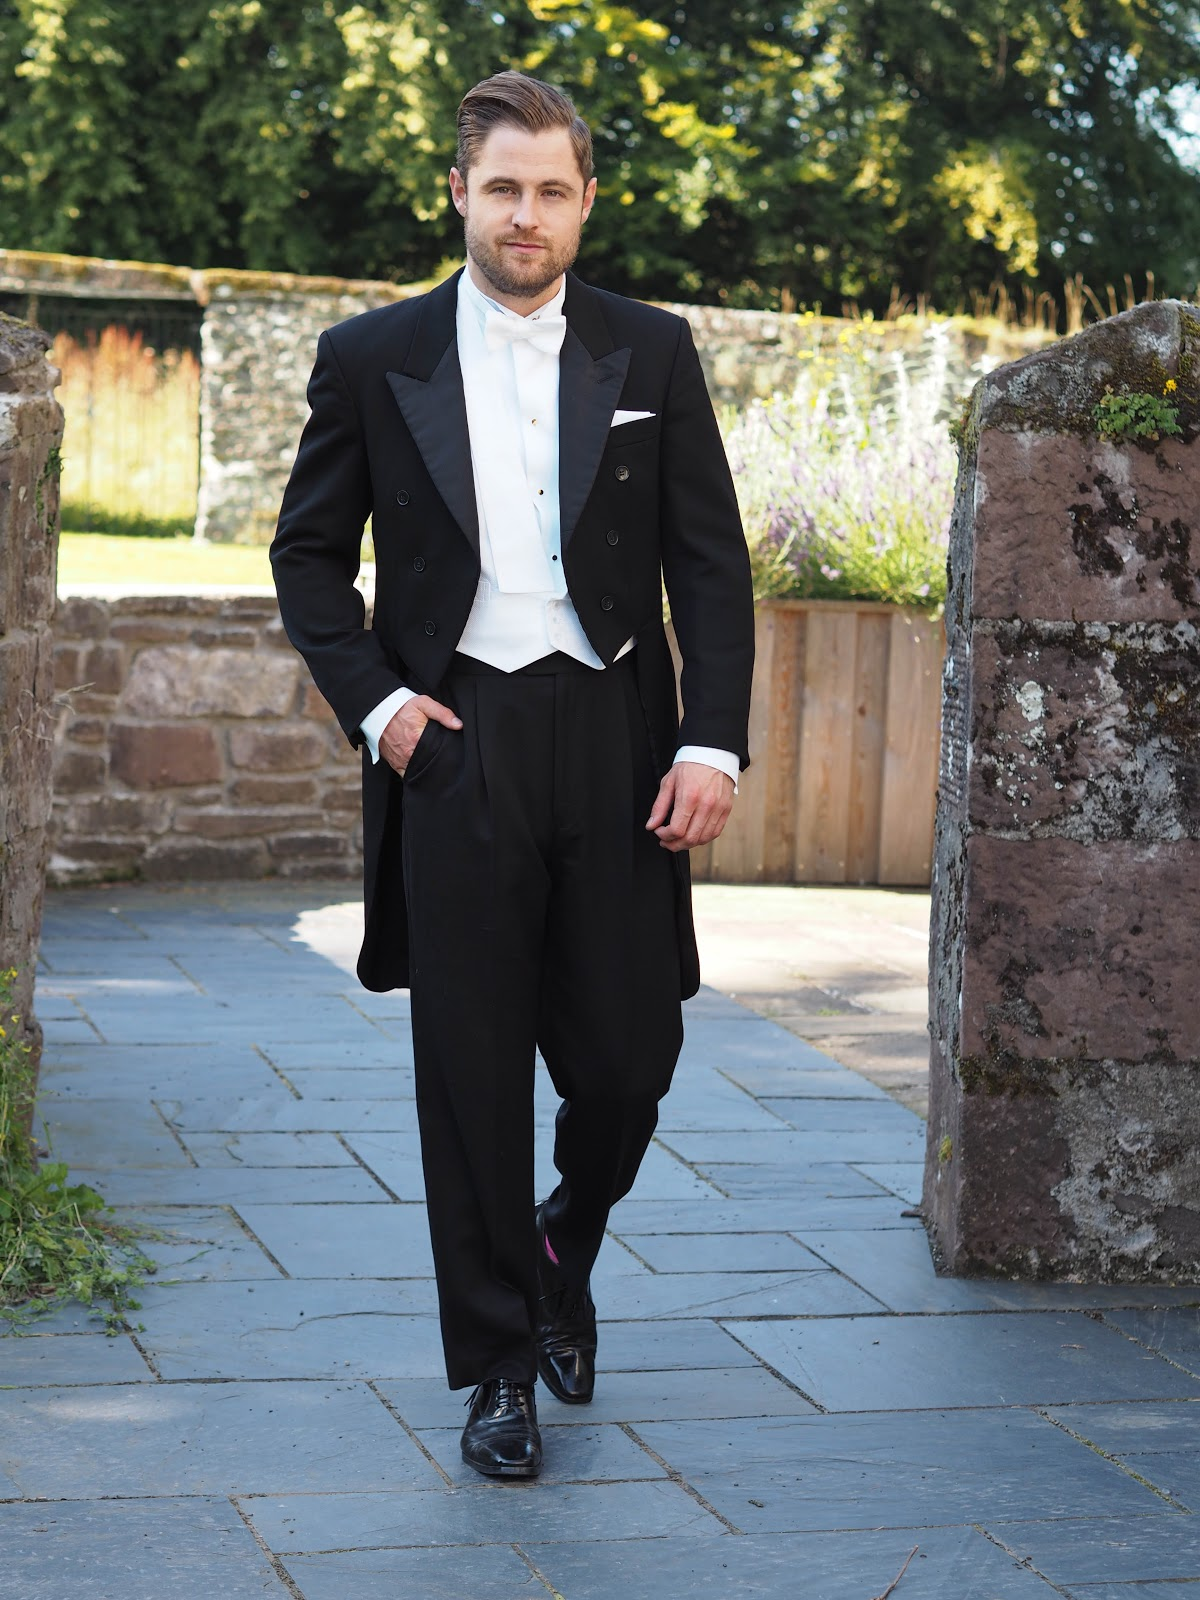 White Tie - TWENTY FIRST CENTURY GENT